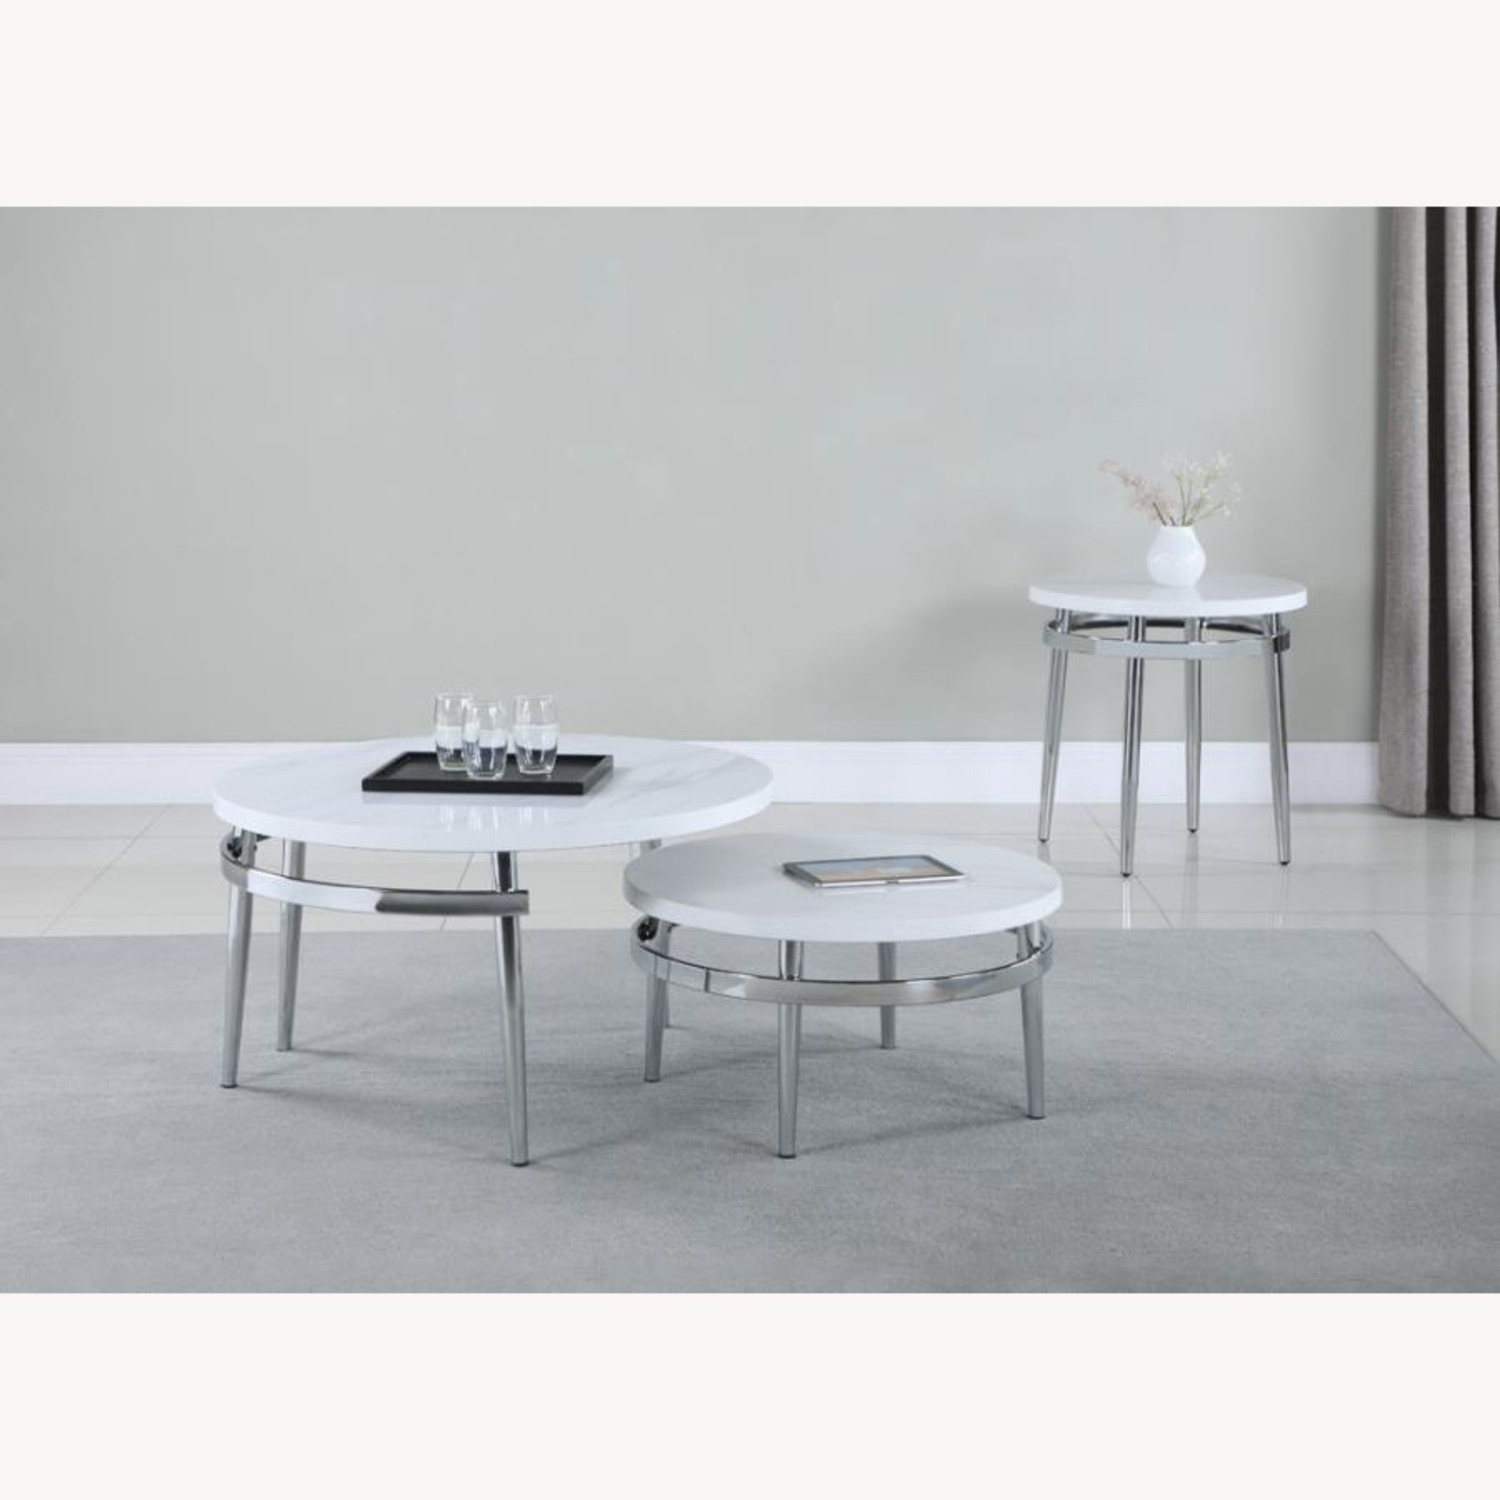 End Table In Faux Carrara Marble Top - image-2